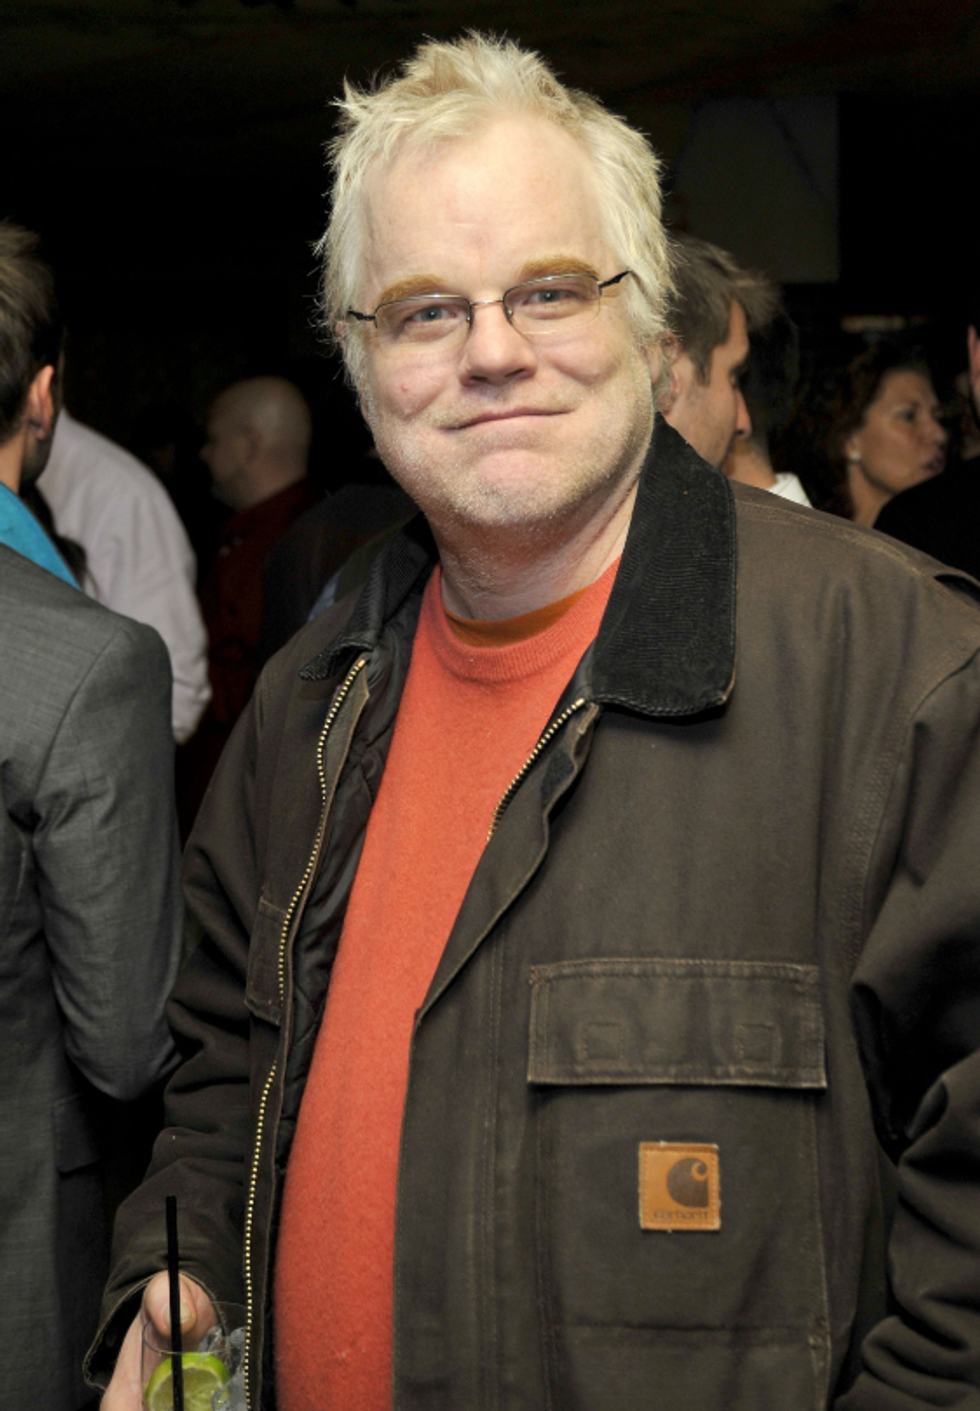 Philip Seymour Hoffman and the Politics of Heroin and Celebrity